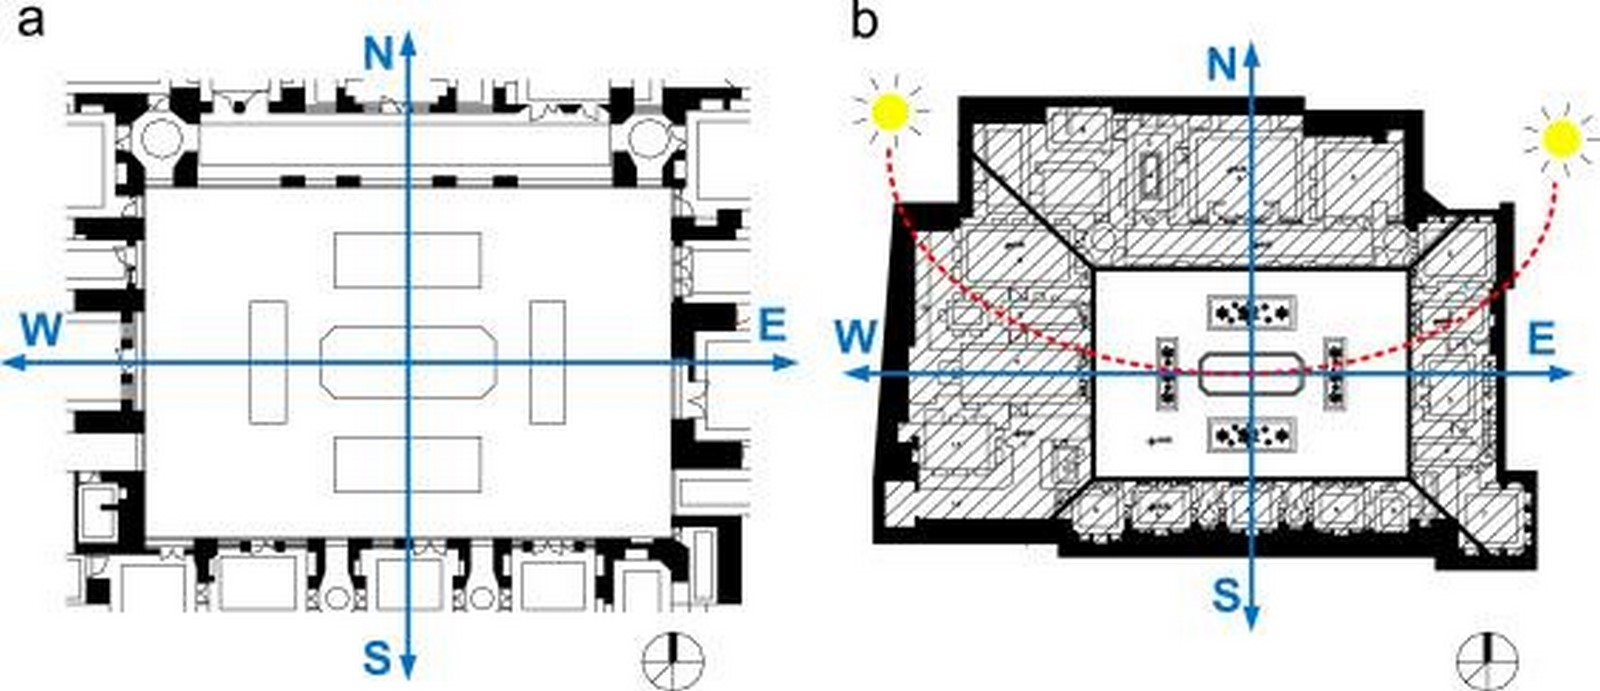 Role of Lighting in Vernacular Architecture - Sheet2